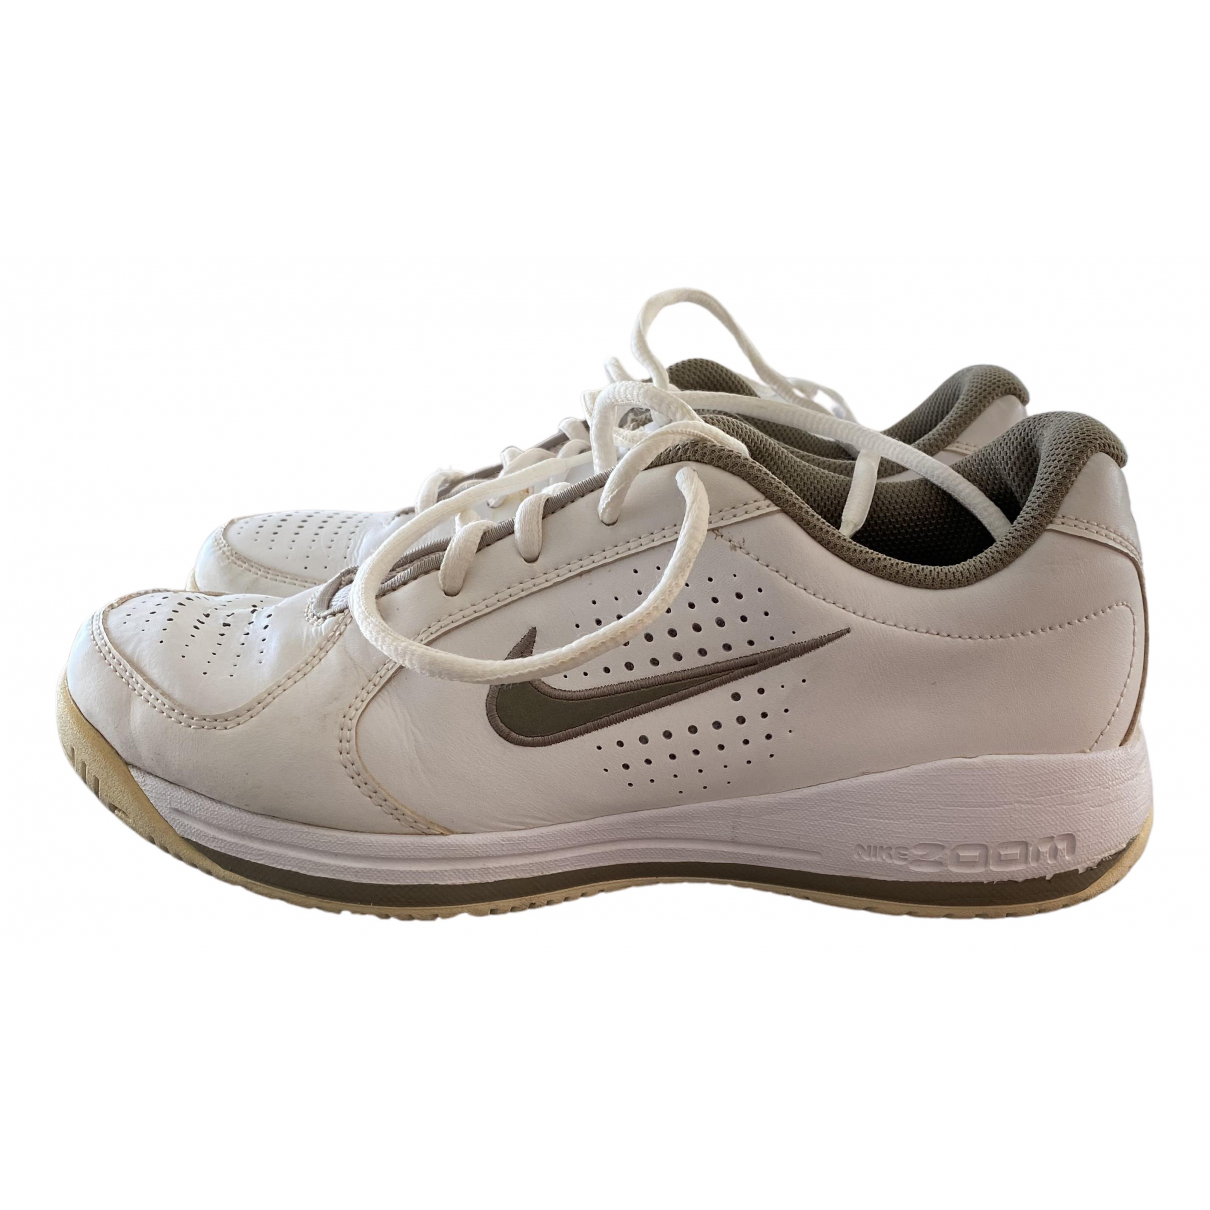 Nike Zoom White Leather Trainers for Women 5.5 UK